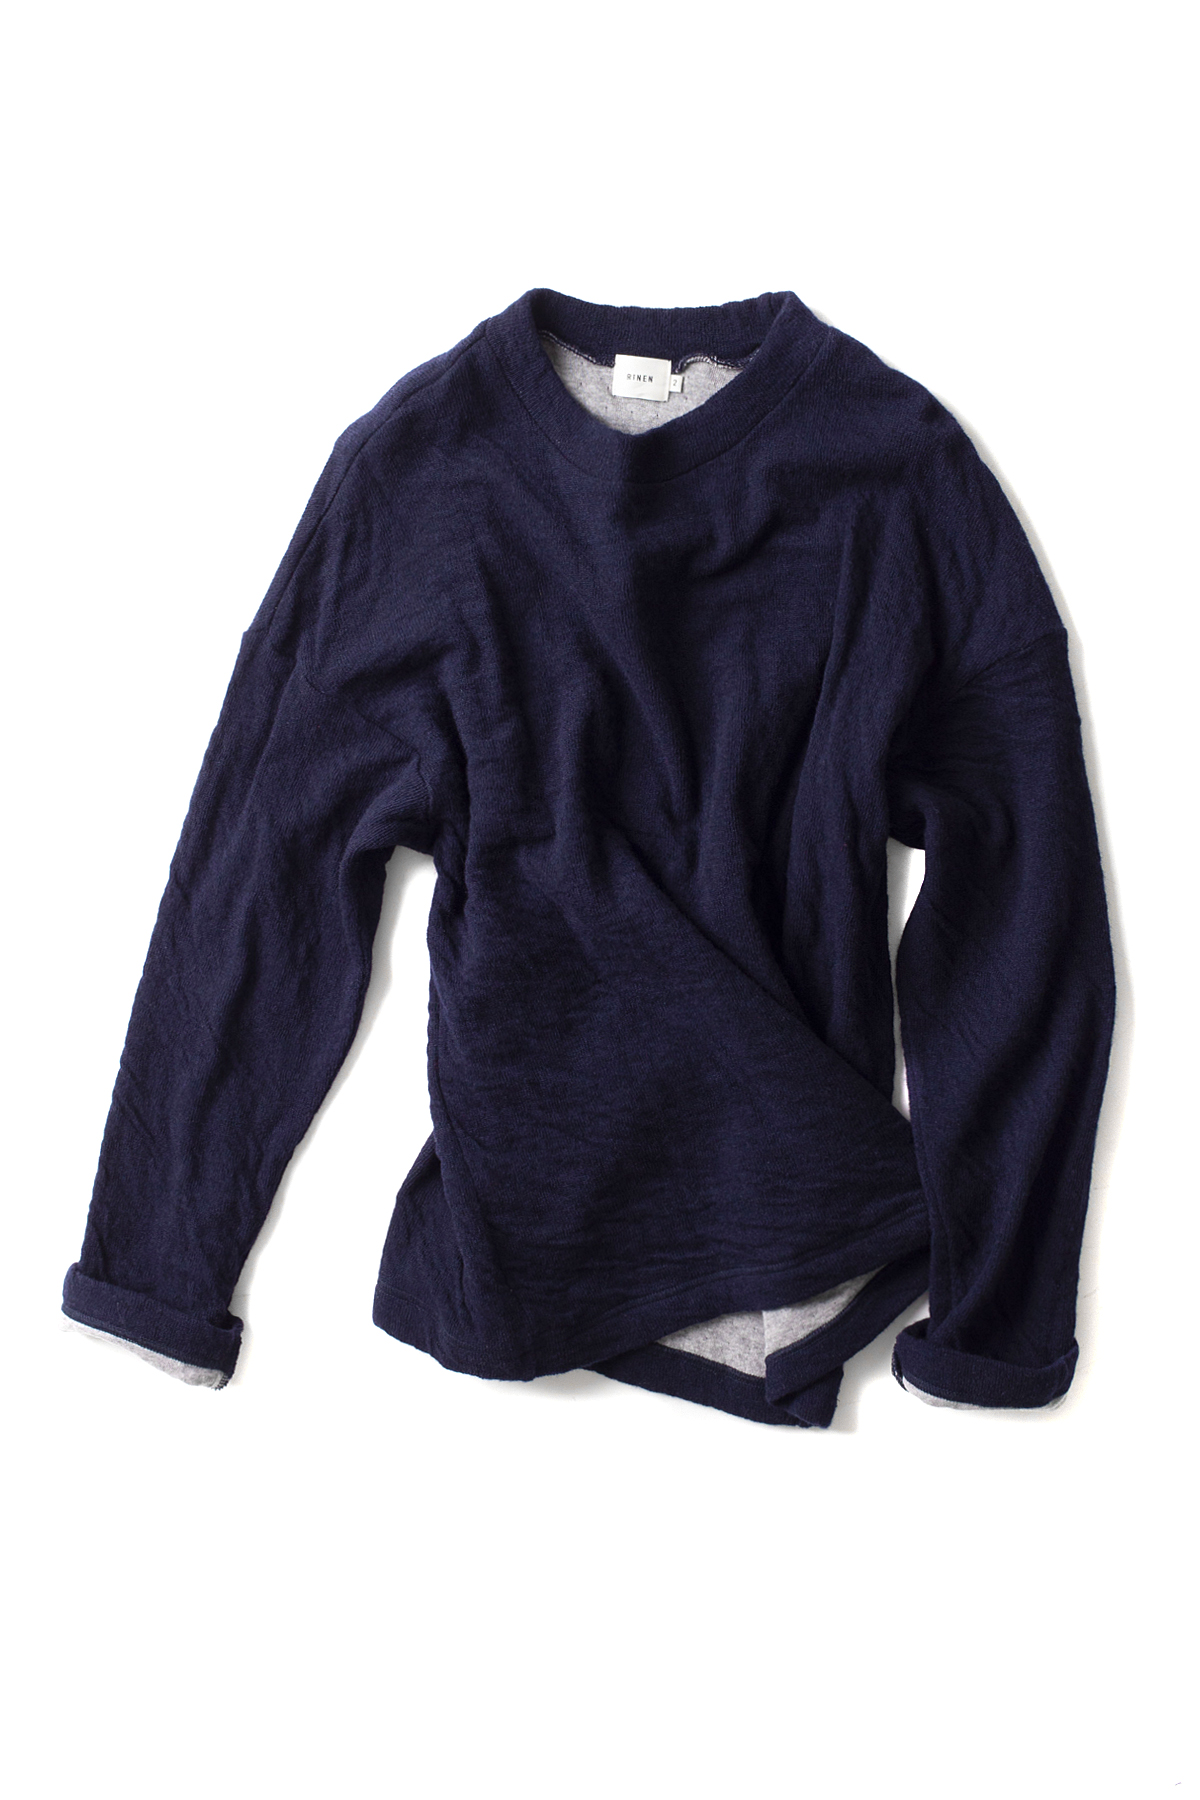 RINEN : Wool Cotton Crewneck 13906 (Navy)